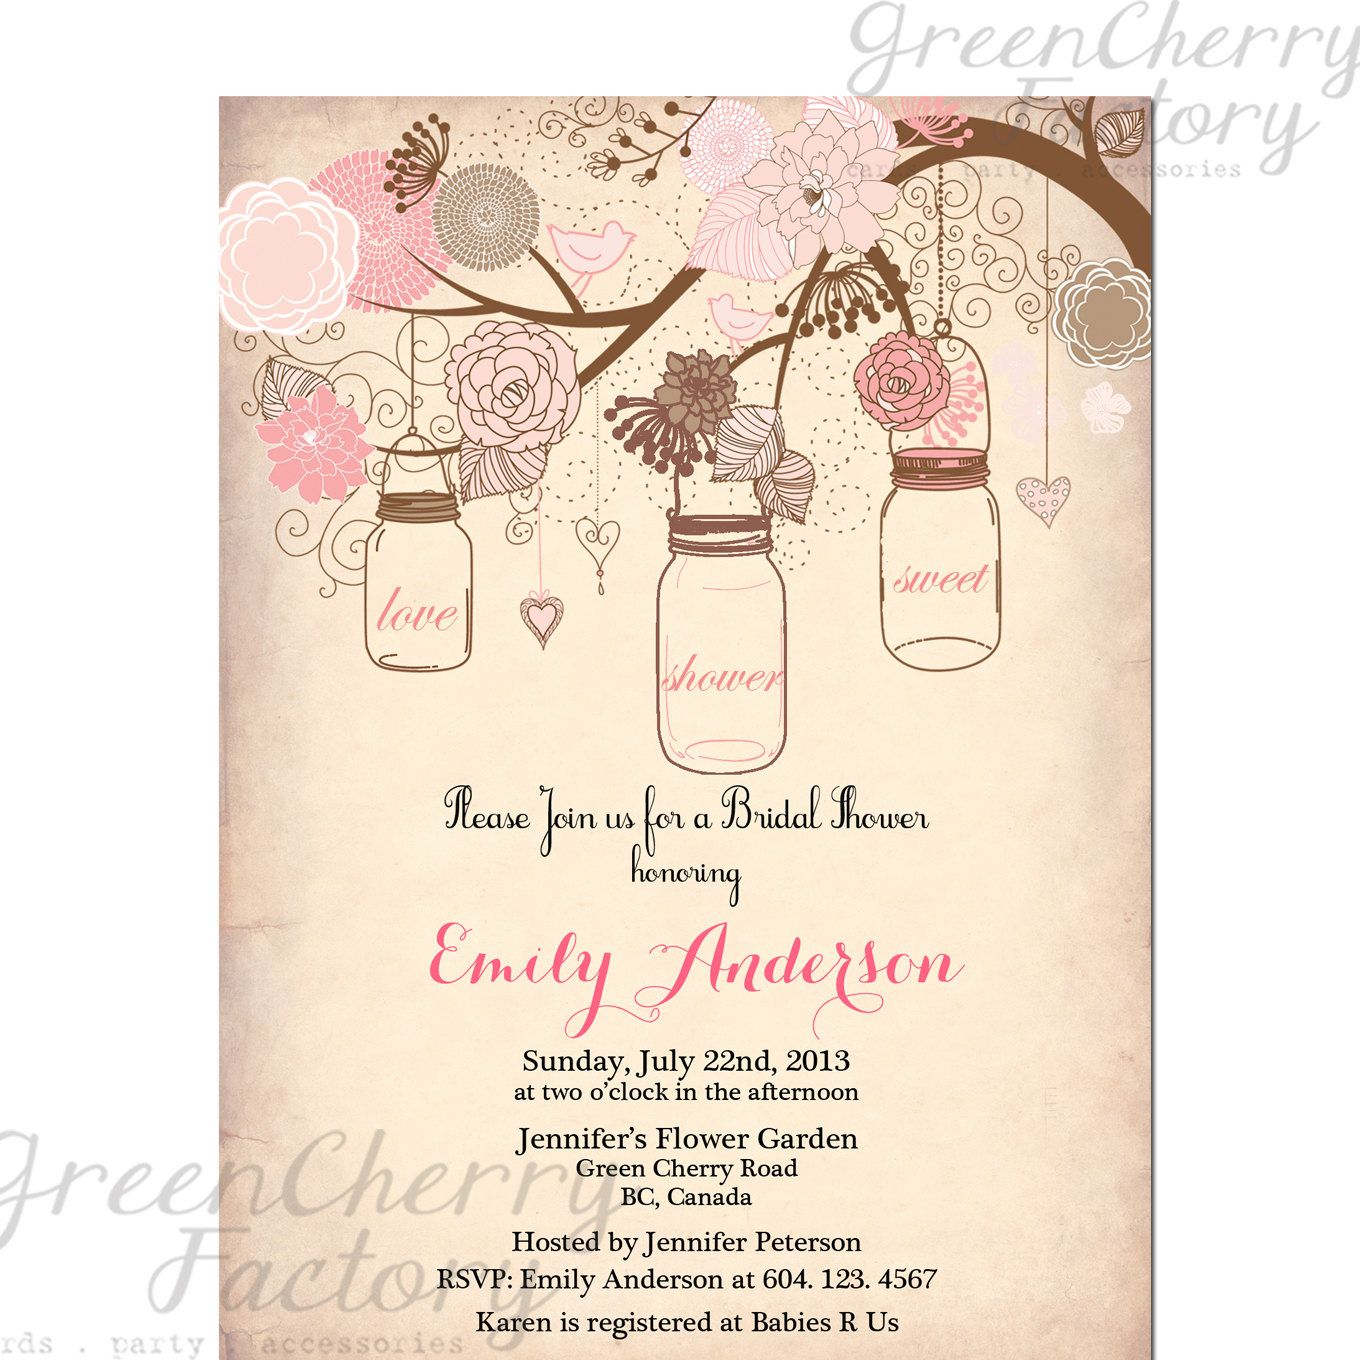 Mason Jar Invitation   Rustic Bridal Shower Invitation   Vintage Peach  Background   Tree Bird Baby  Bridal Shower Invitation Templates Download